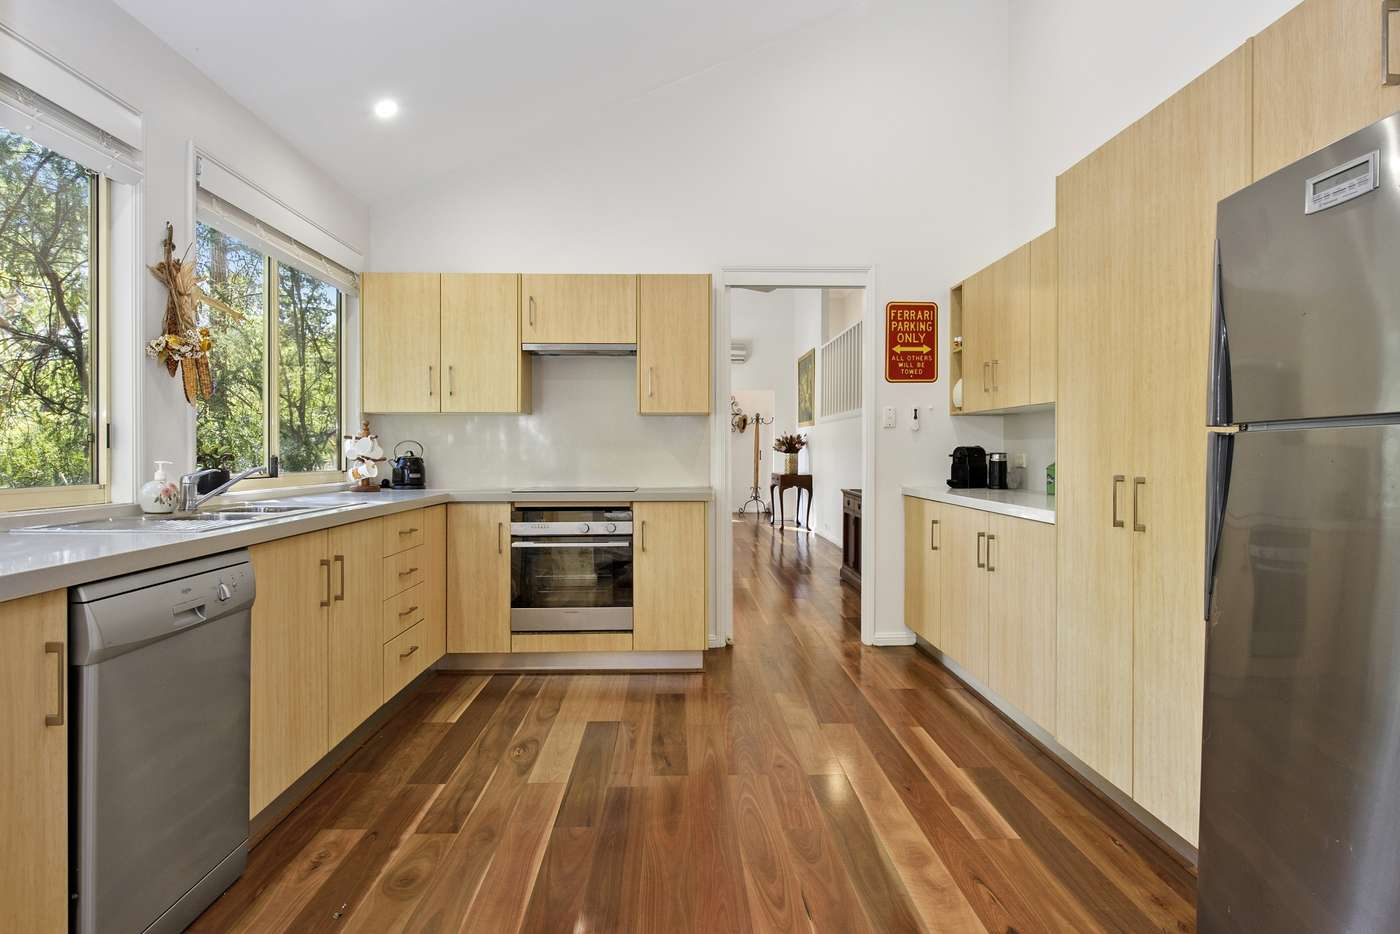 Sixth view of Homely house listing, 3 Timbarra Road, Westleigh NSW 2120